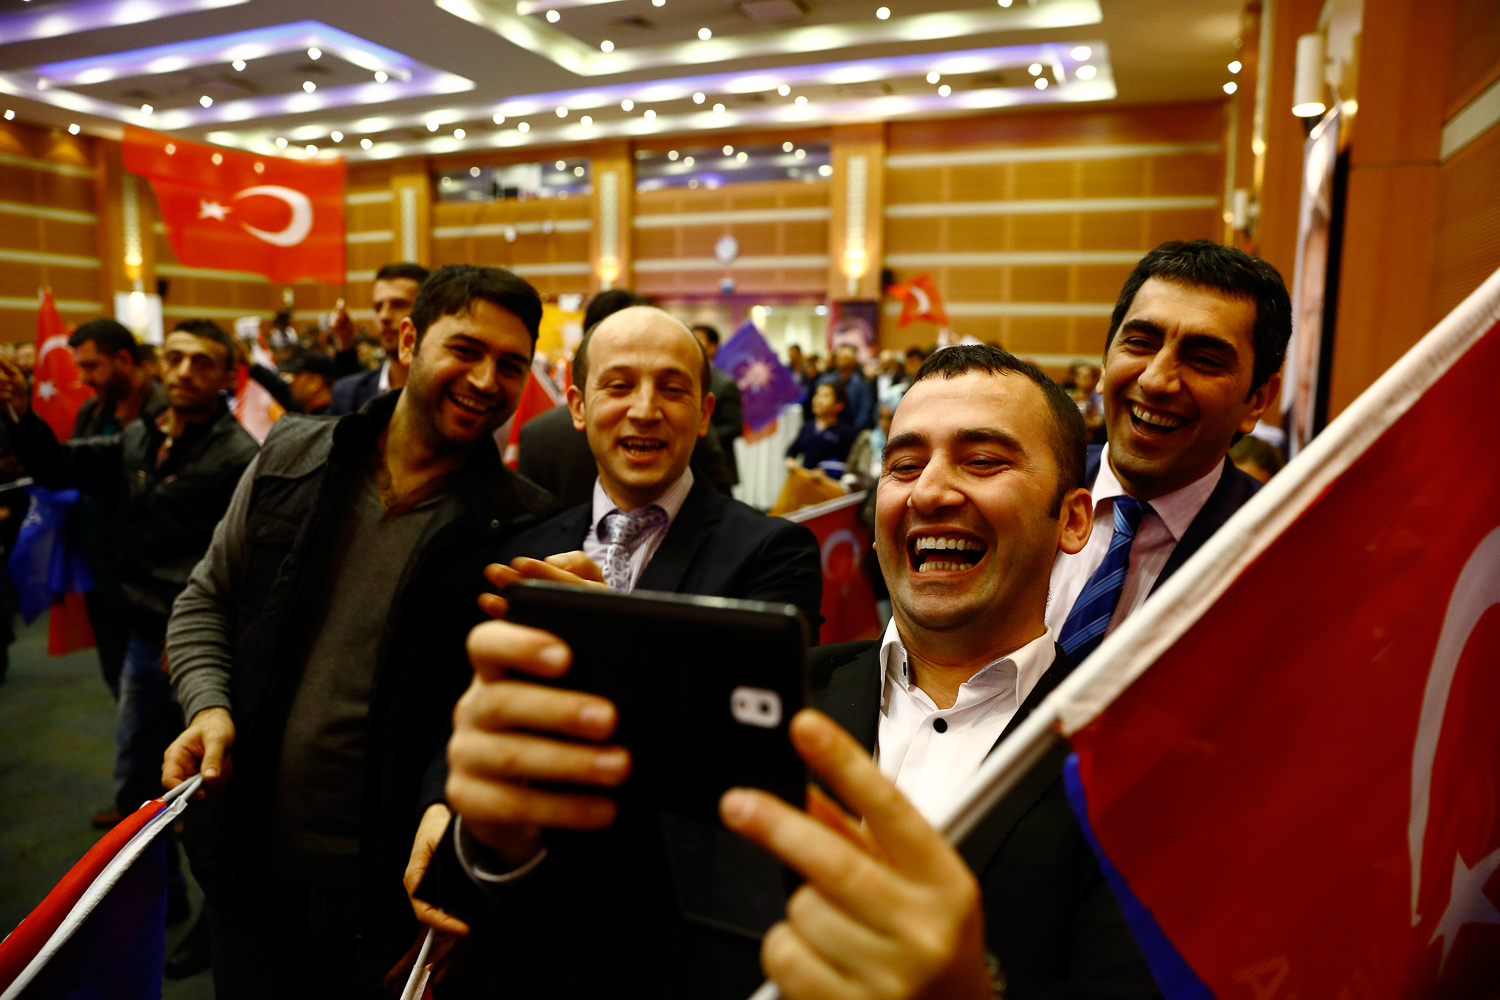 AK Party supporters celebrated victory at the party's headquarters in Istanbul until the early hours of the next day. [Huseyin Narin/Al Jazeera]